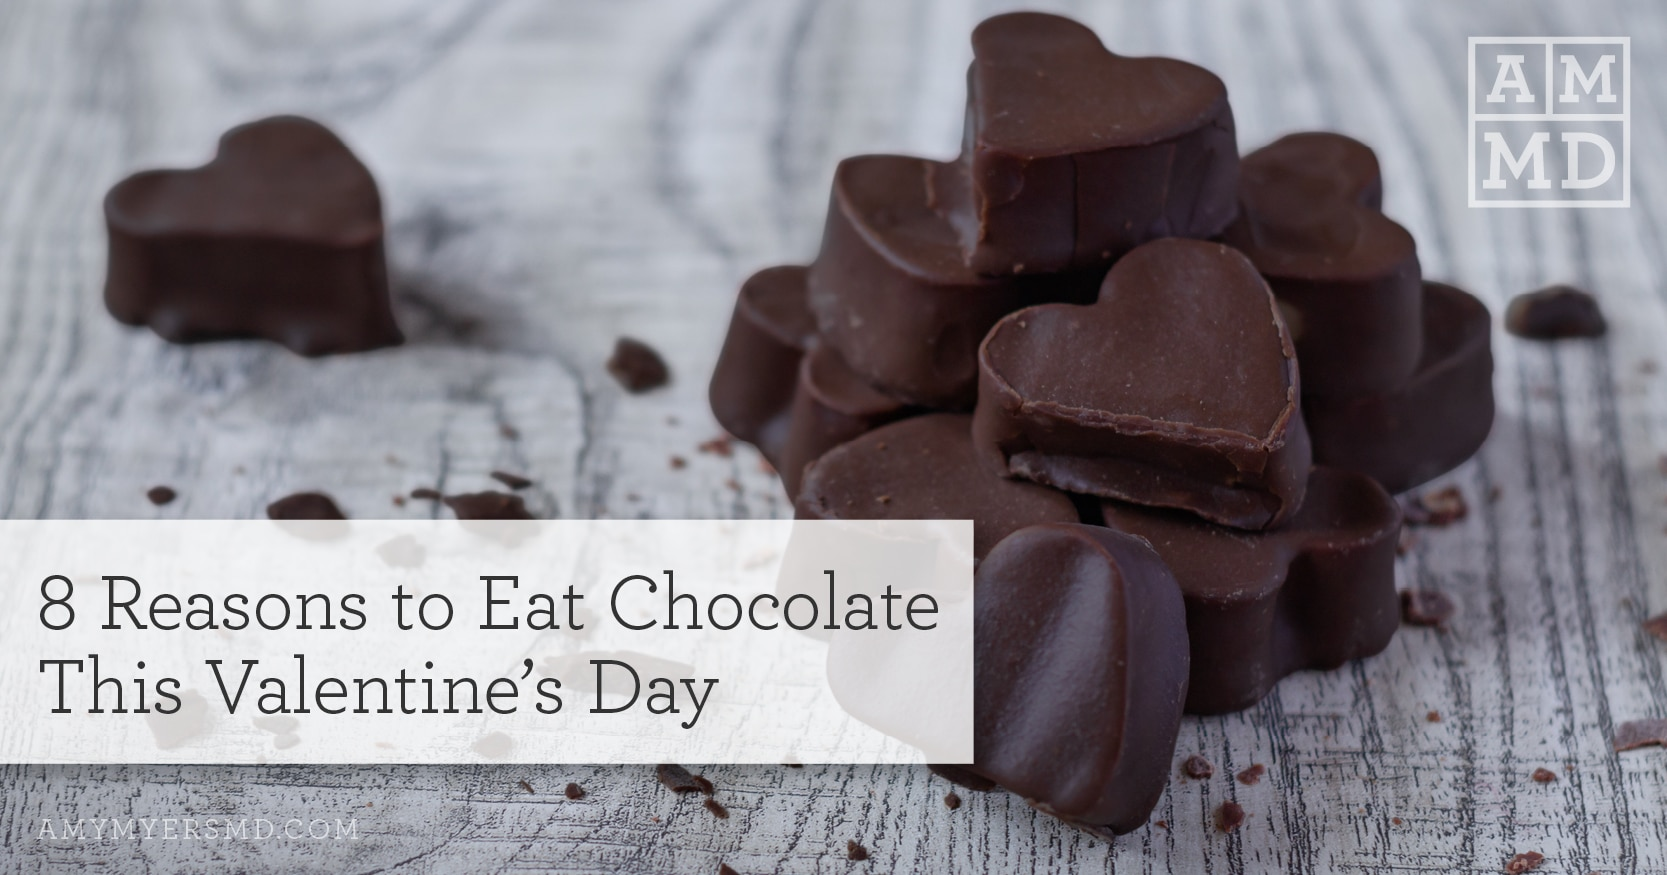 8 Reasons to Eat Chocolate This Valentine's Day - Chocolate Hearts - Featured Image - Amy Myers MD